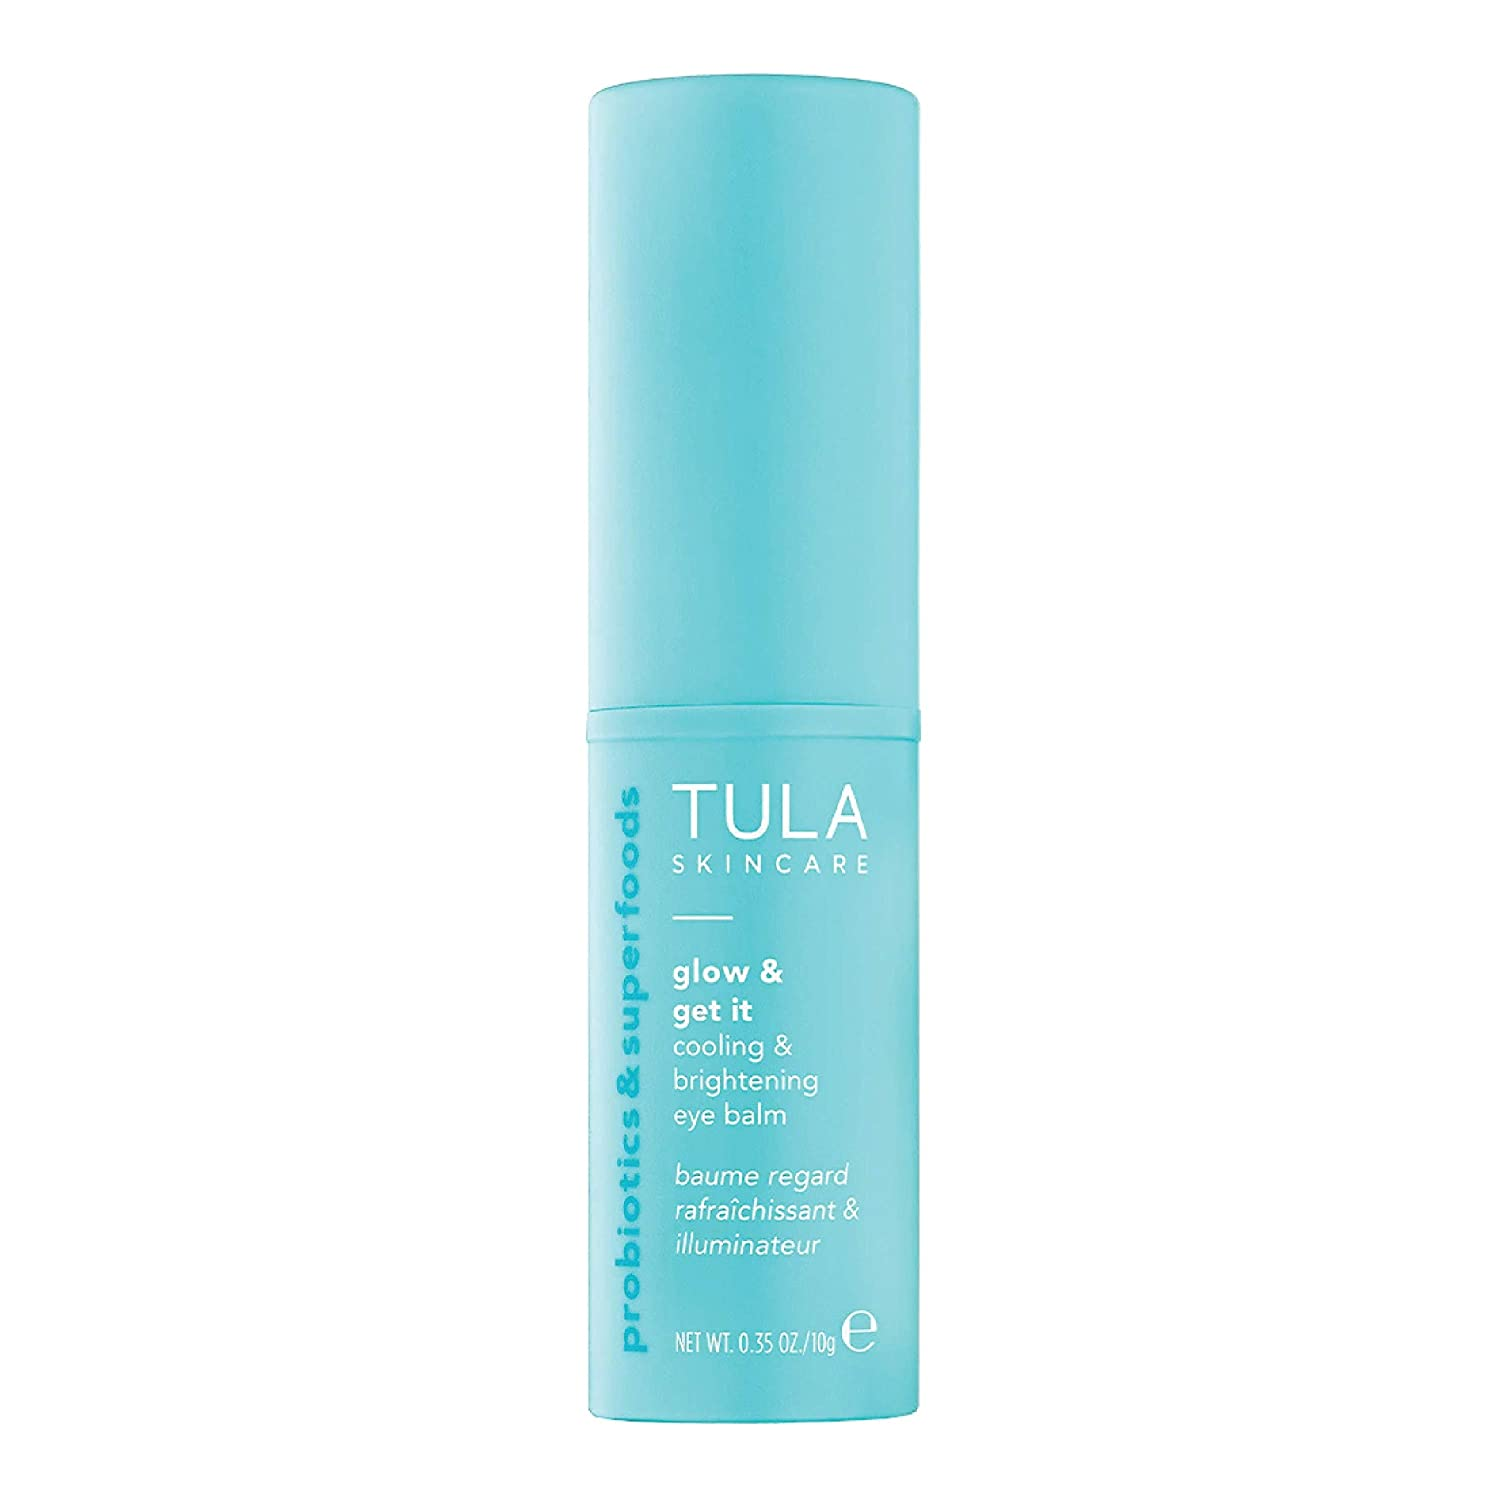 TULA Probiotic Skin Care Glow & Get It Cooling